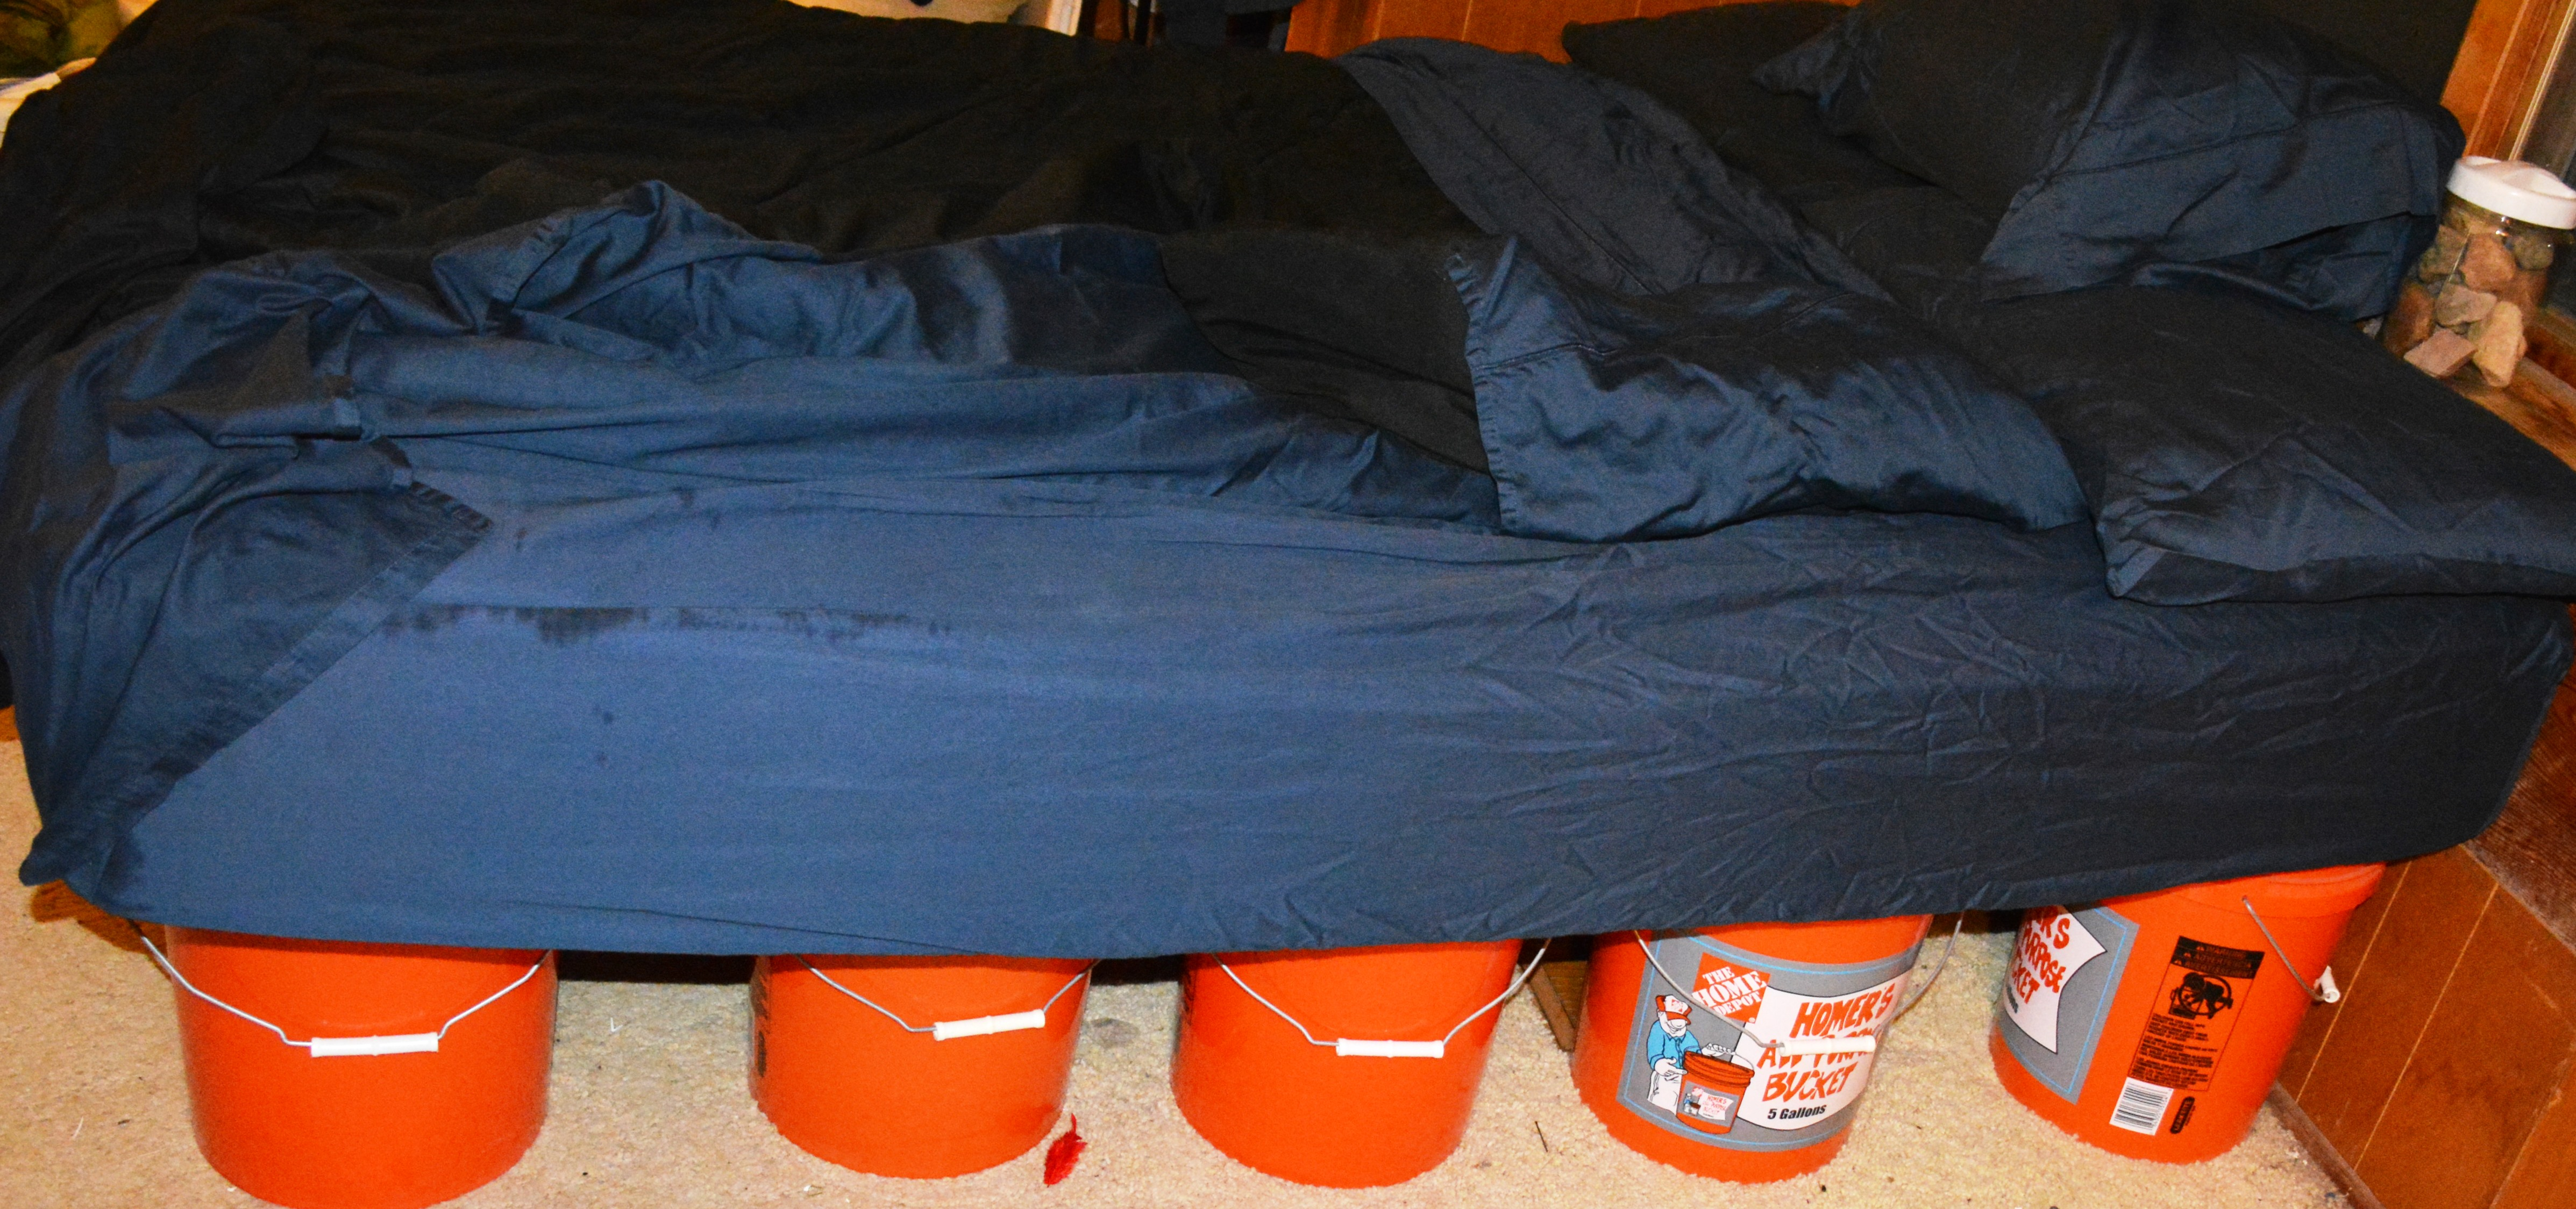 diy air mattress frame 5 Gallon Bucket Bed Frame | Five Gallon Ideas diy air mattress frame